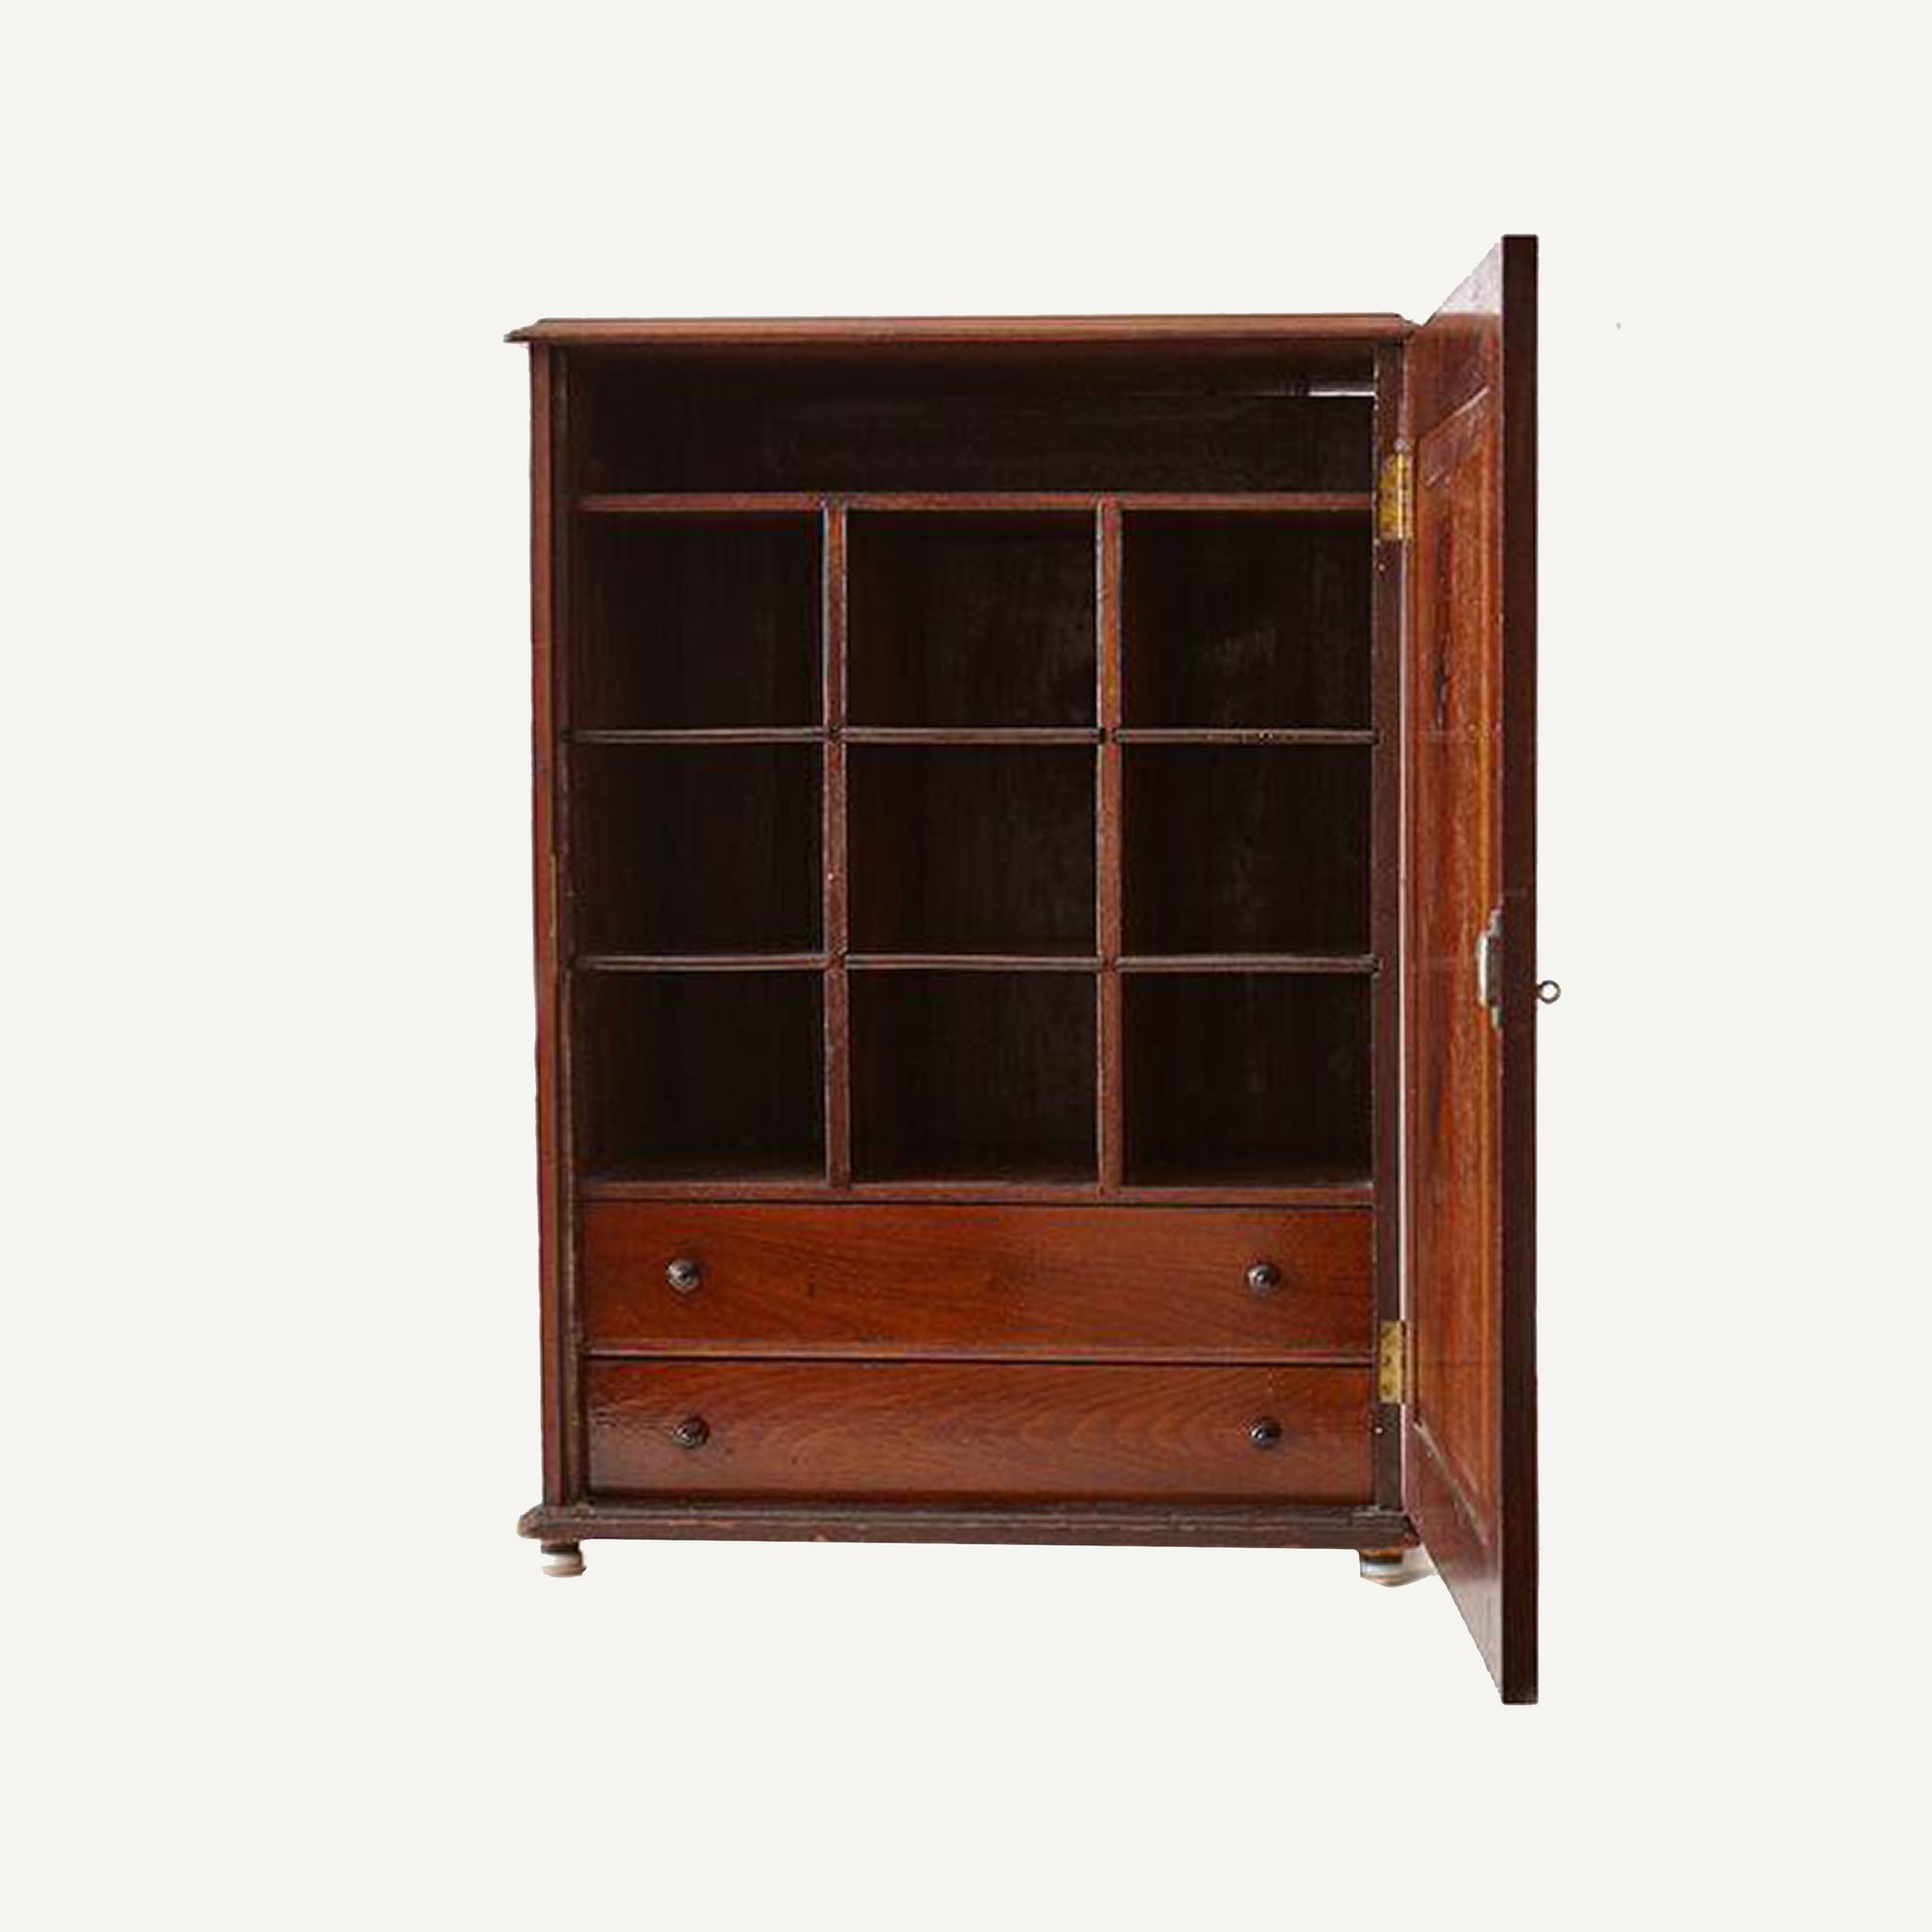 ANTIQUE ENGLISH CABINET